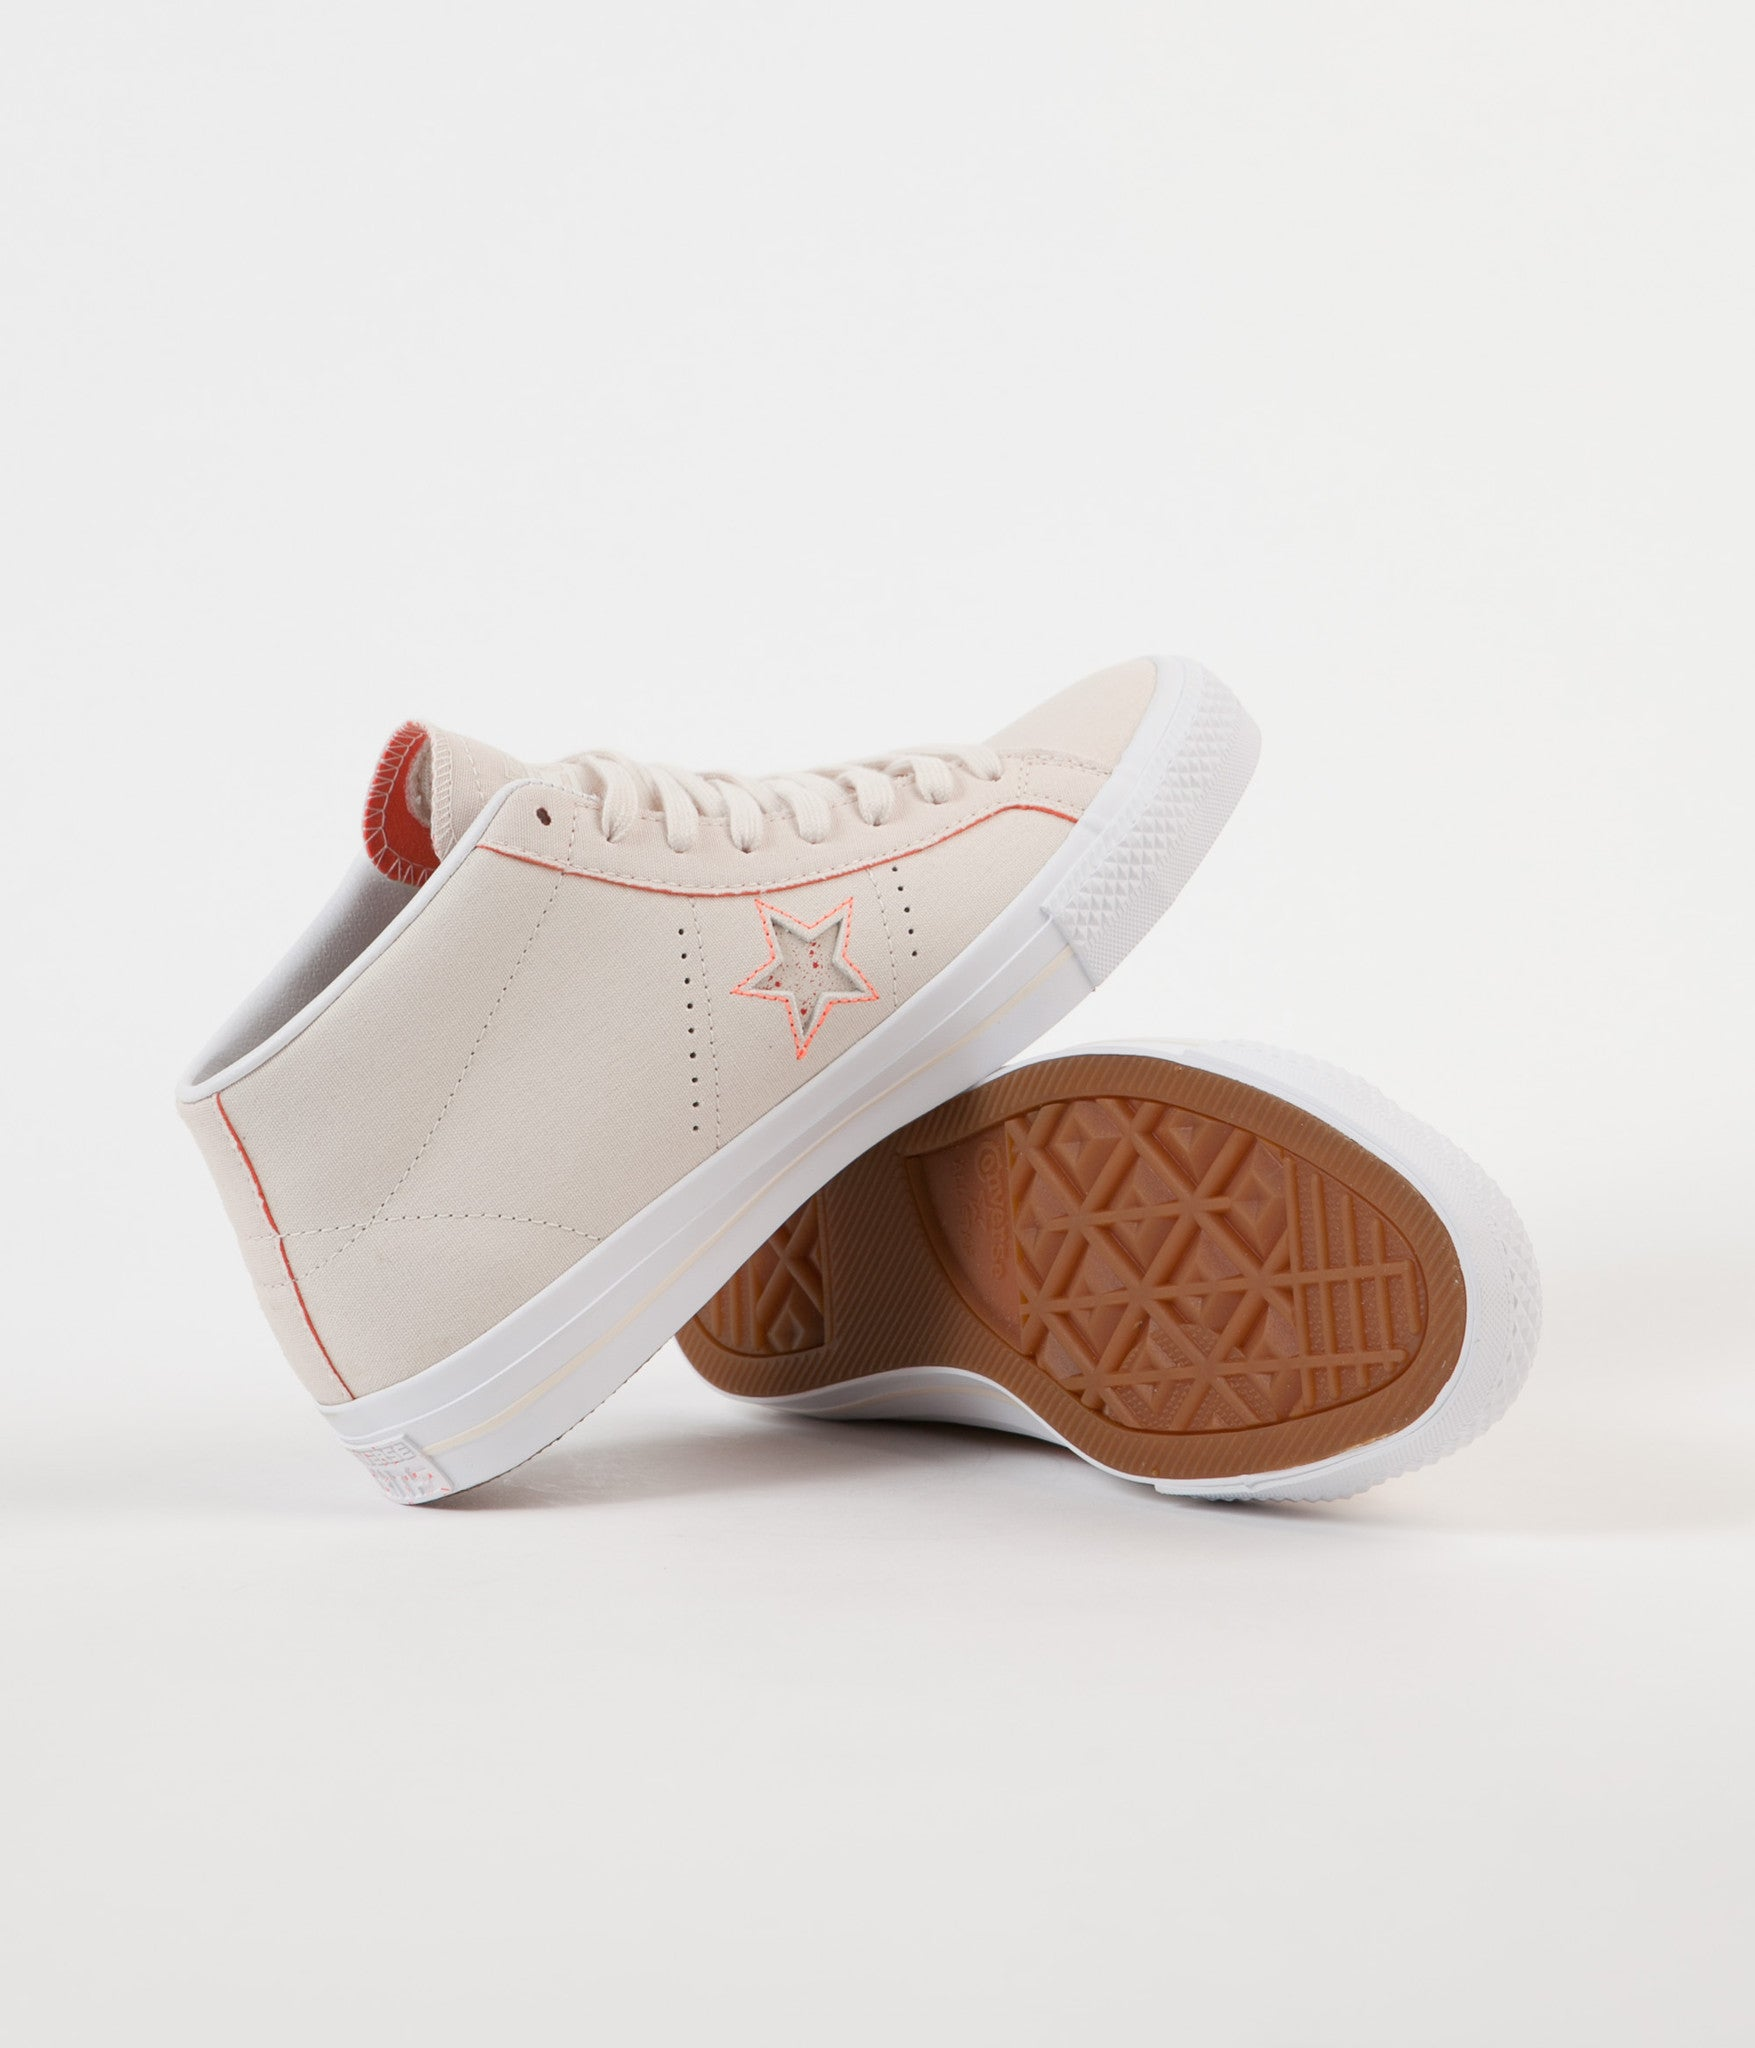 dd276343dca103 Converse One Star Pro Mid Shoes - Natural   Orange   White ...